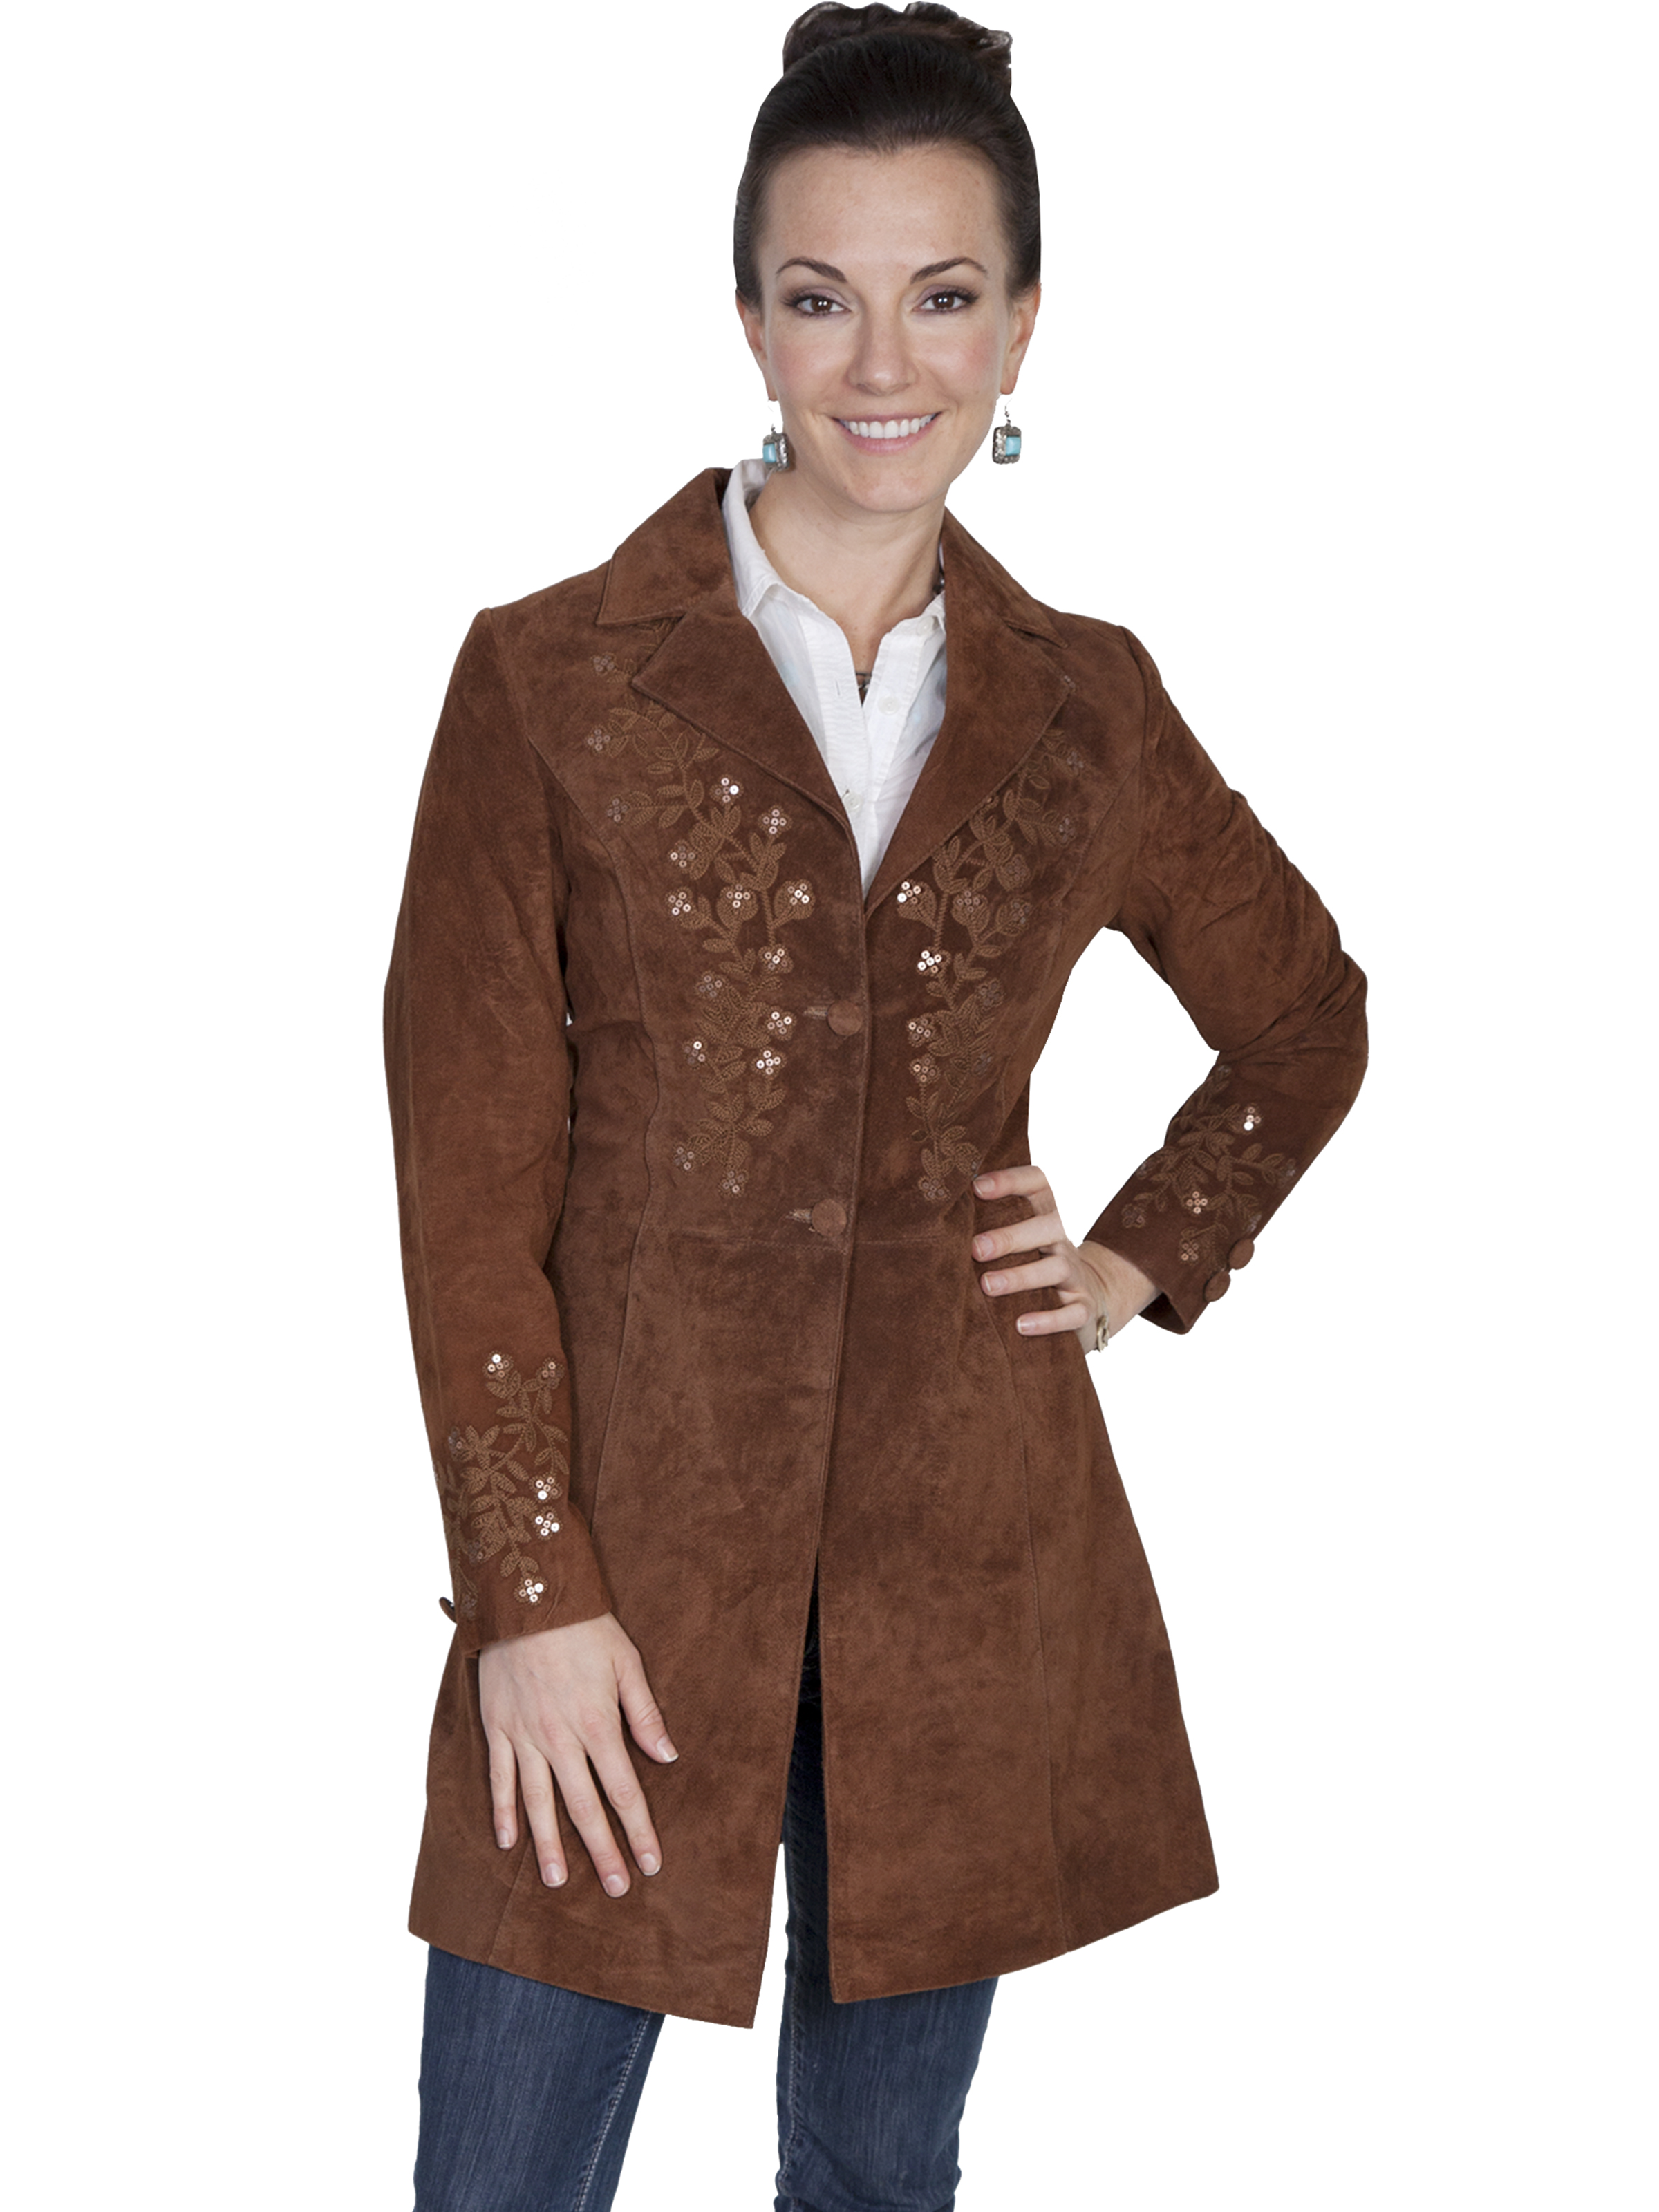 Pungo ridge scully ladies boar suede embroidered coat